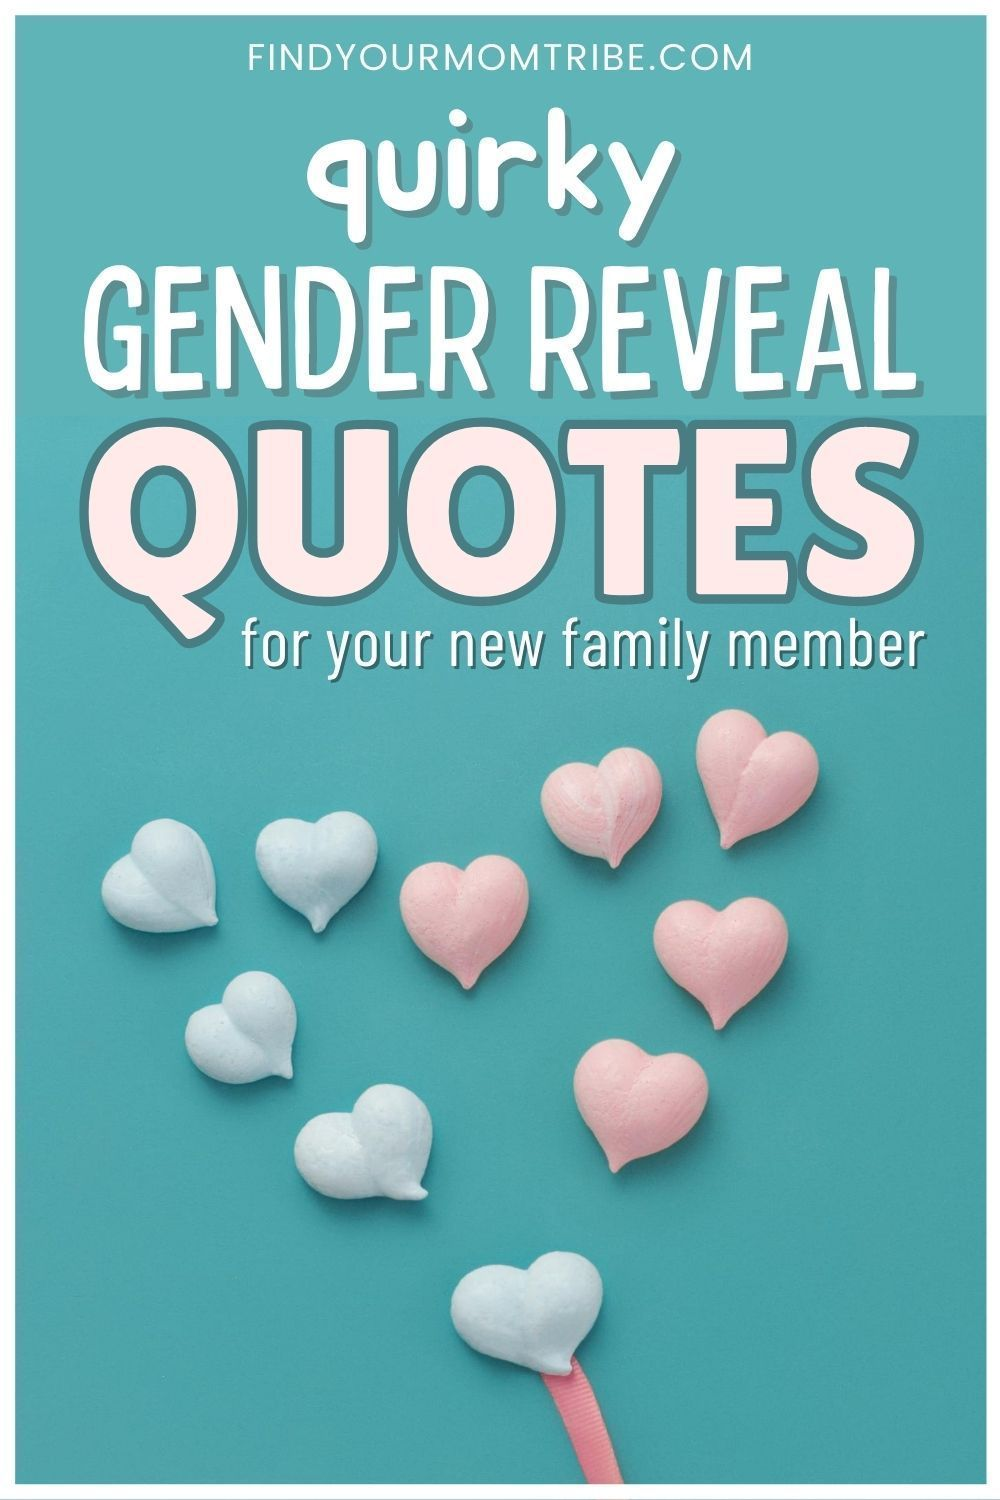 35 Quirky Gender Reveal Quotes For Your New Family Member In 2021 Gender Reveal Boy Gender Reveal Baby Gender Reveal